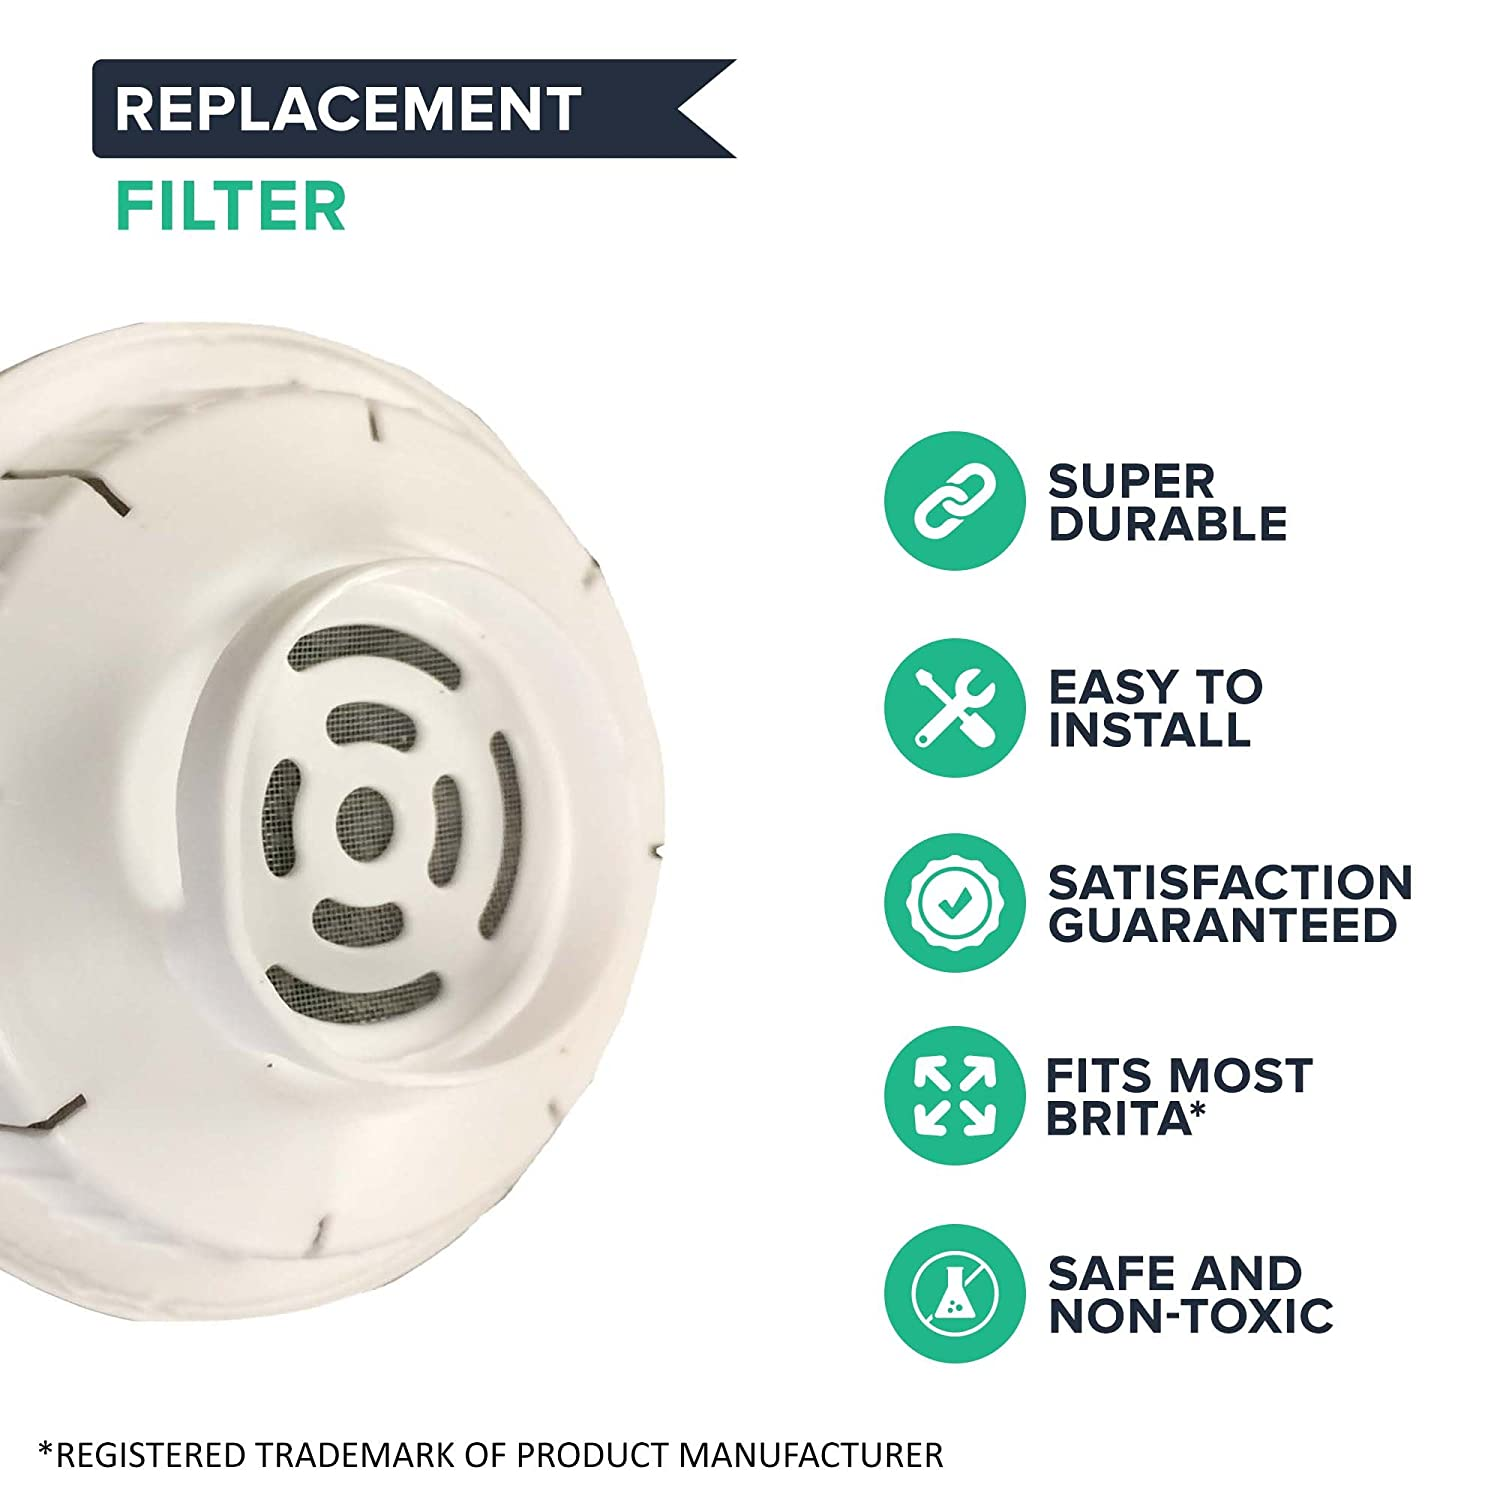 Think Crucial 2 Replacements for Brita Water Filter Fits Pitchers /& Dispensers